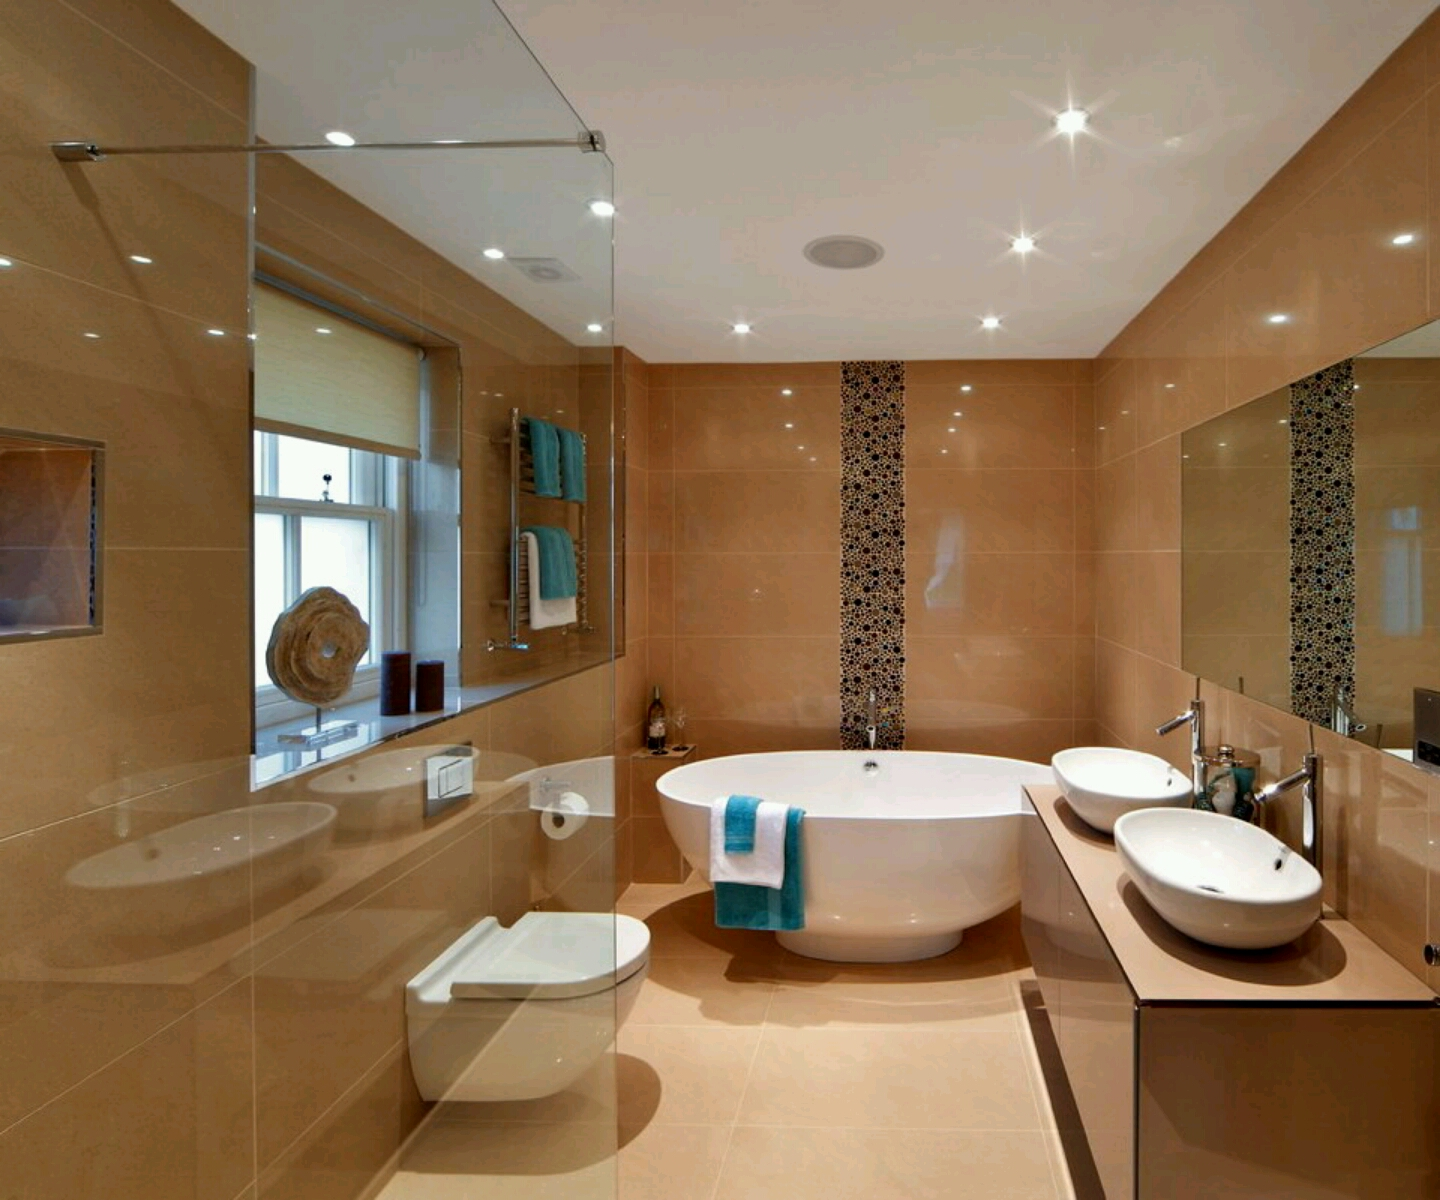 New home designs latest luxury modern bathrooms designs for Latest bathroom designs